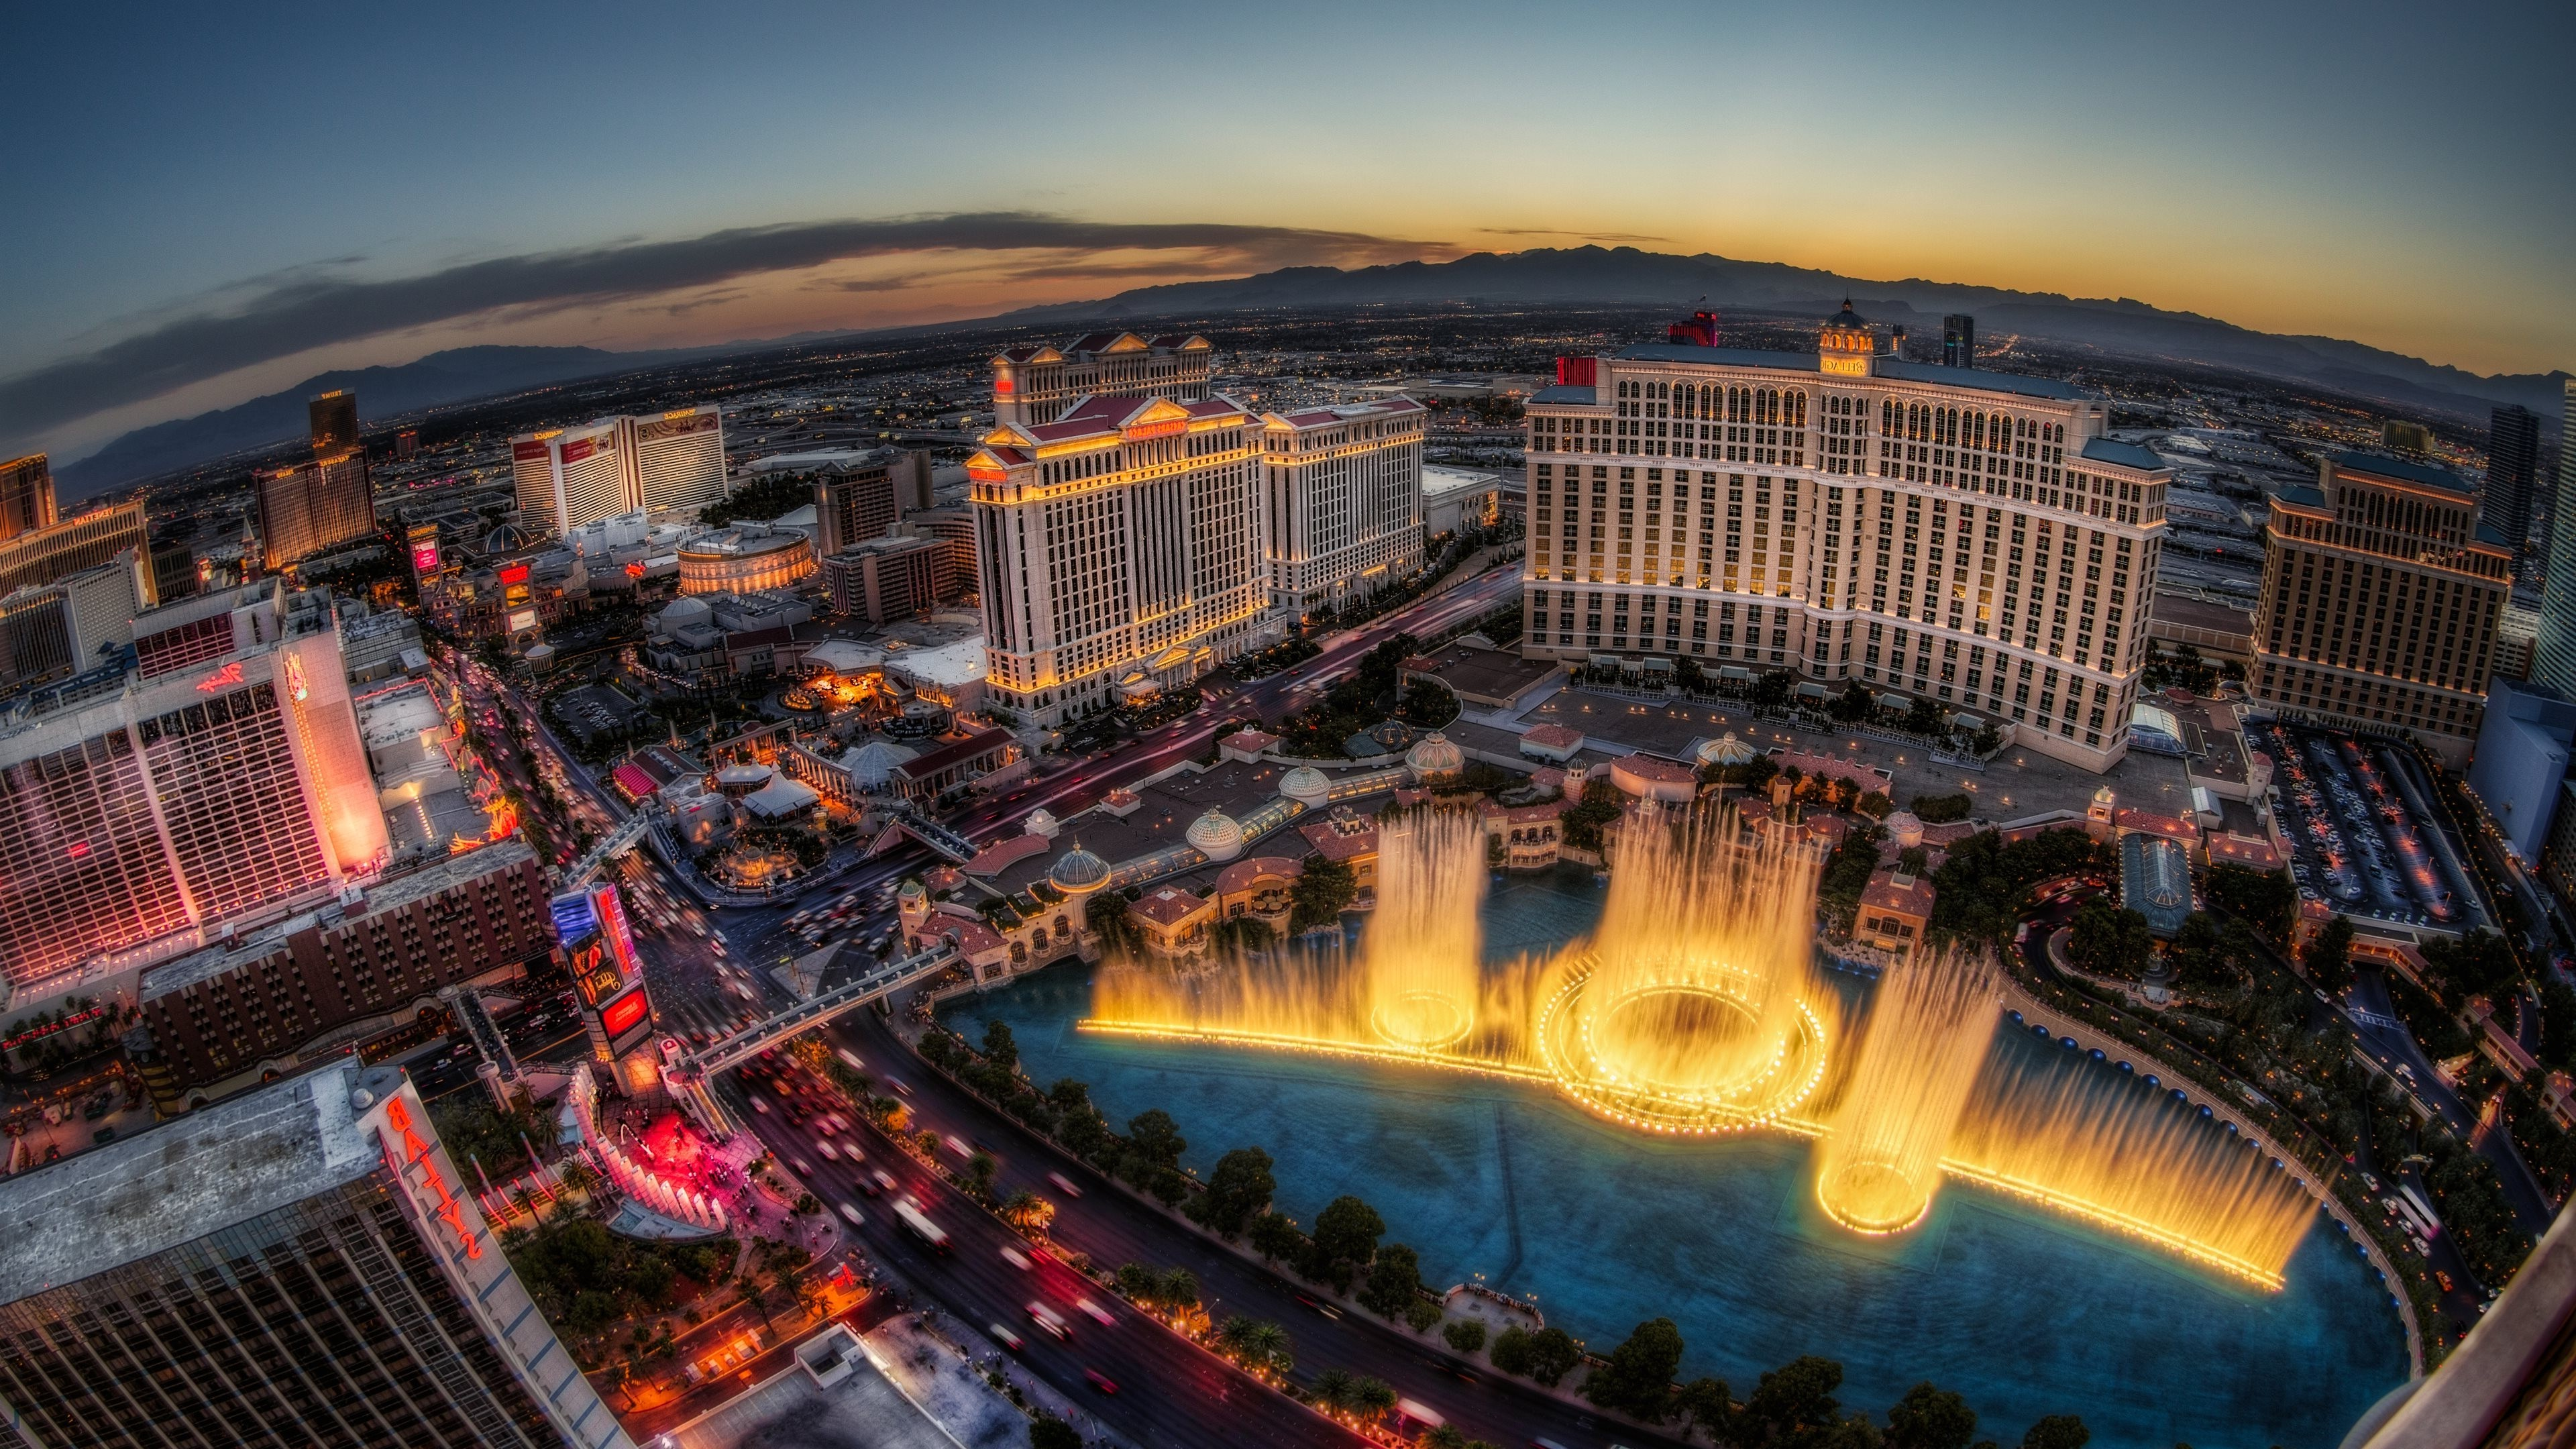 Las Vegas Strip Hd Wallpaper Las Vegas Building Landscape Fountain Mountains City